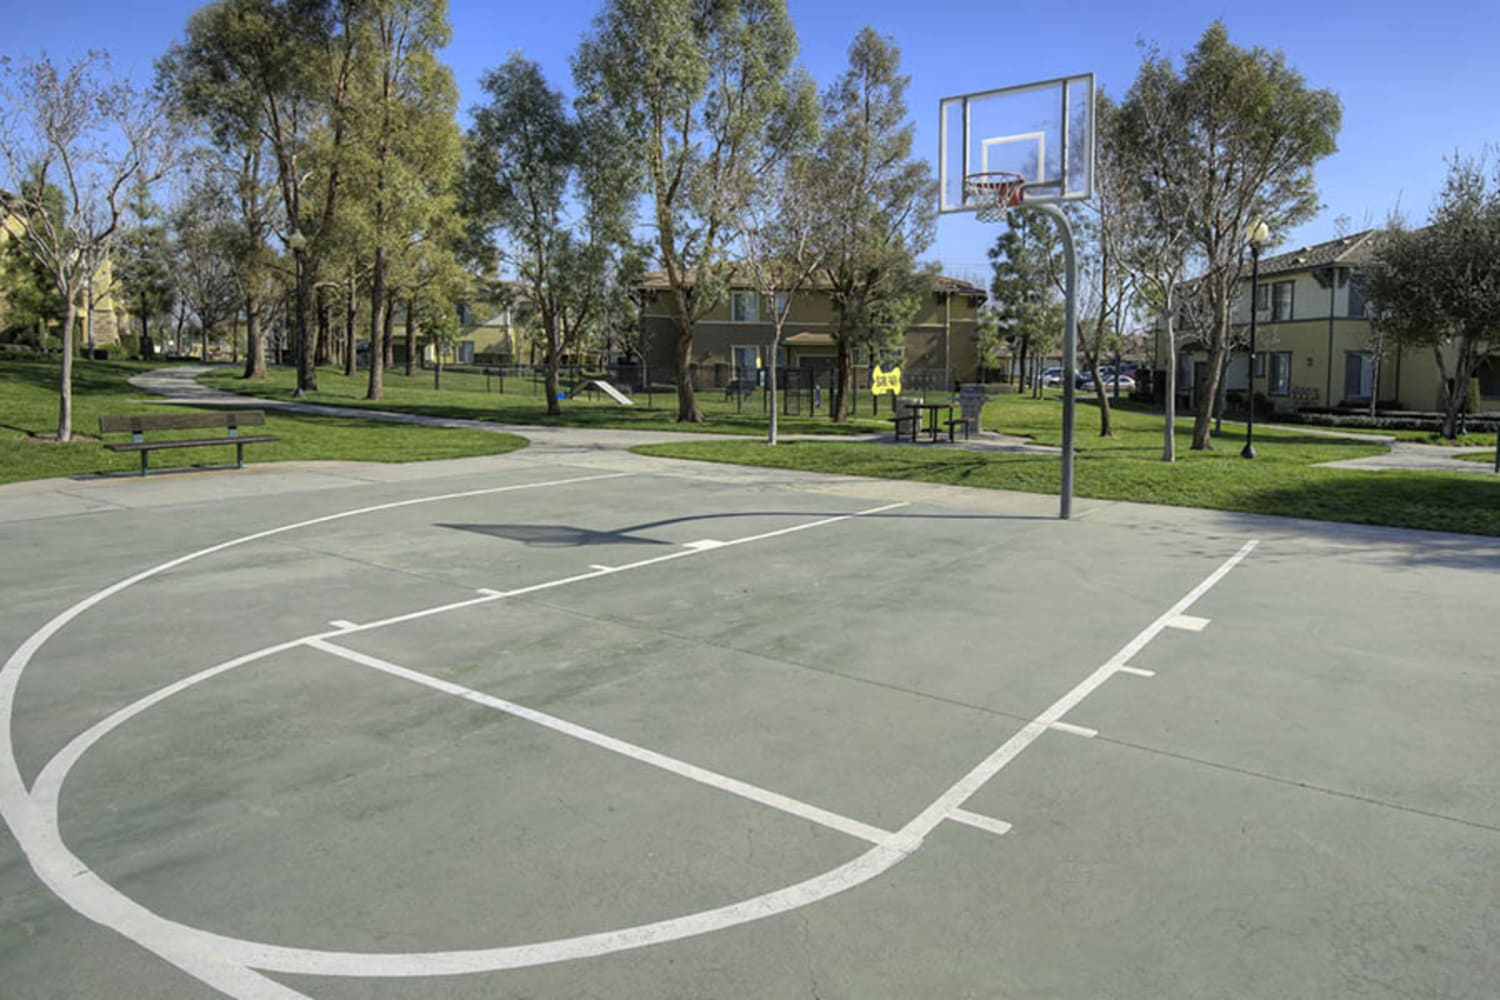 Basketball court at Camino Real in Rancho Cucamonga, California